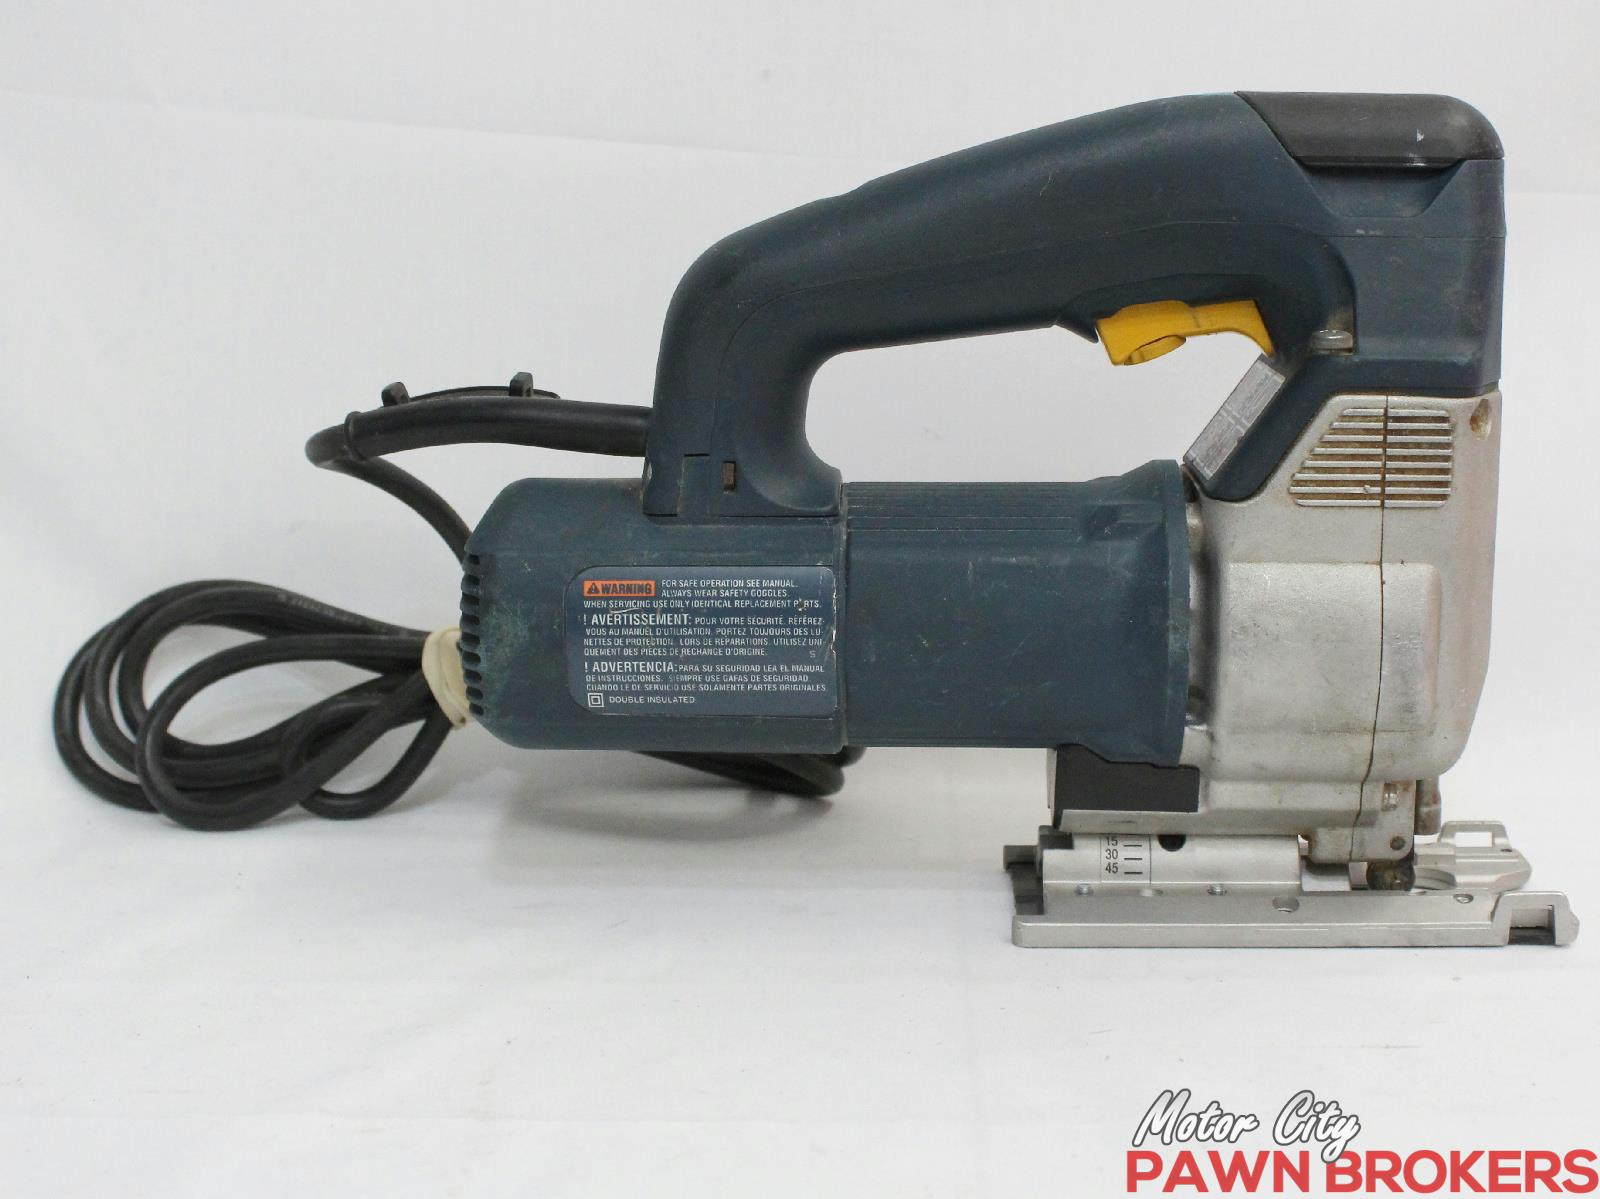 Bosch sds 1587avs top handle corded electric jig for Motor city pawn shop